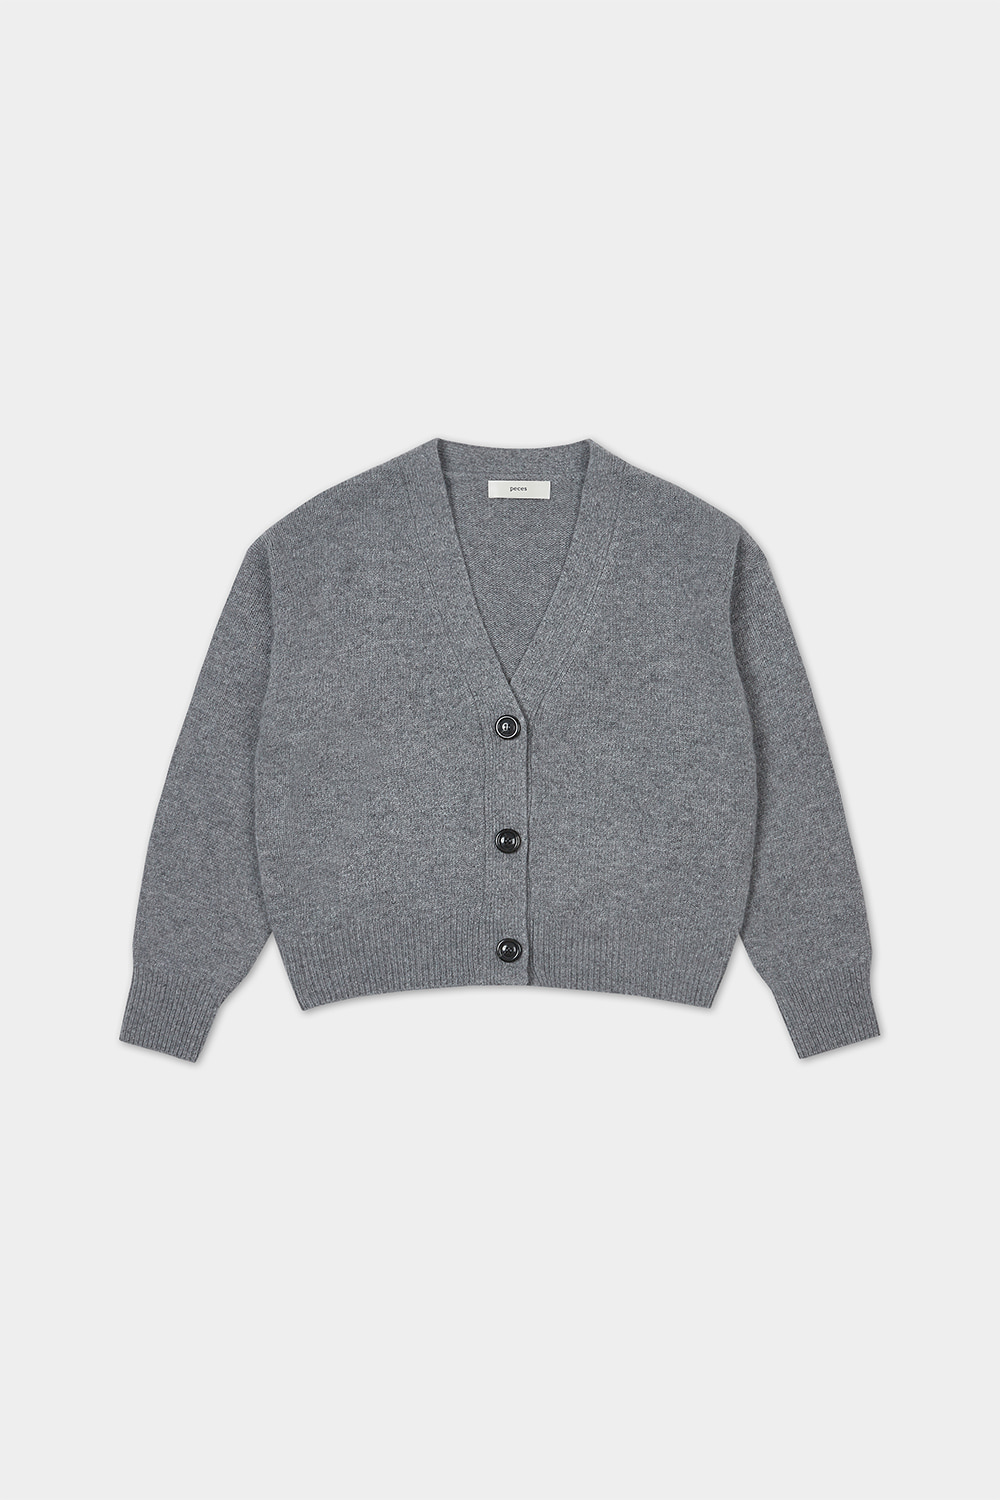 20FW CASHMERE BLENDED CARDIGAN (GREY) - 3COLOR